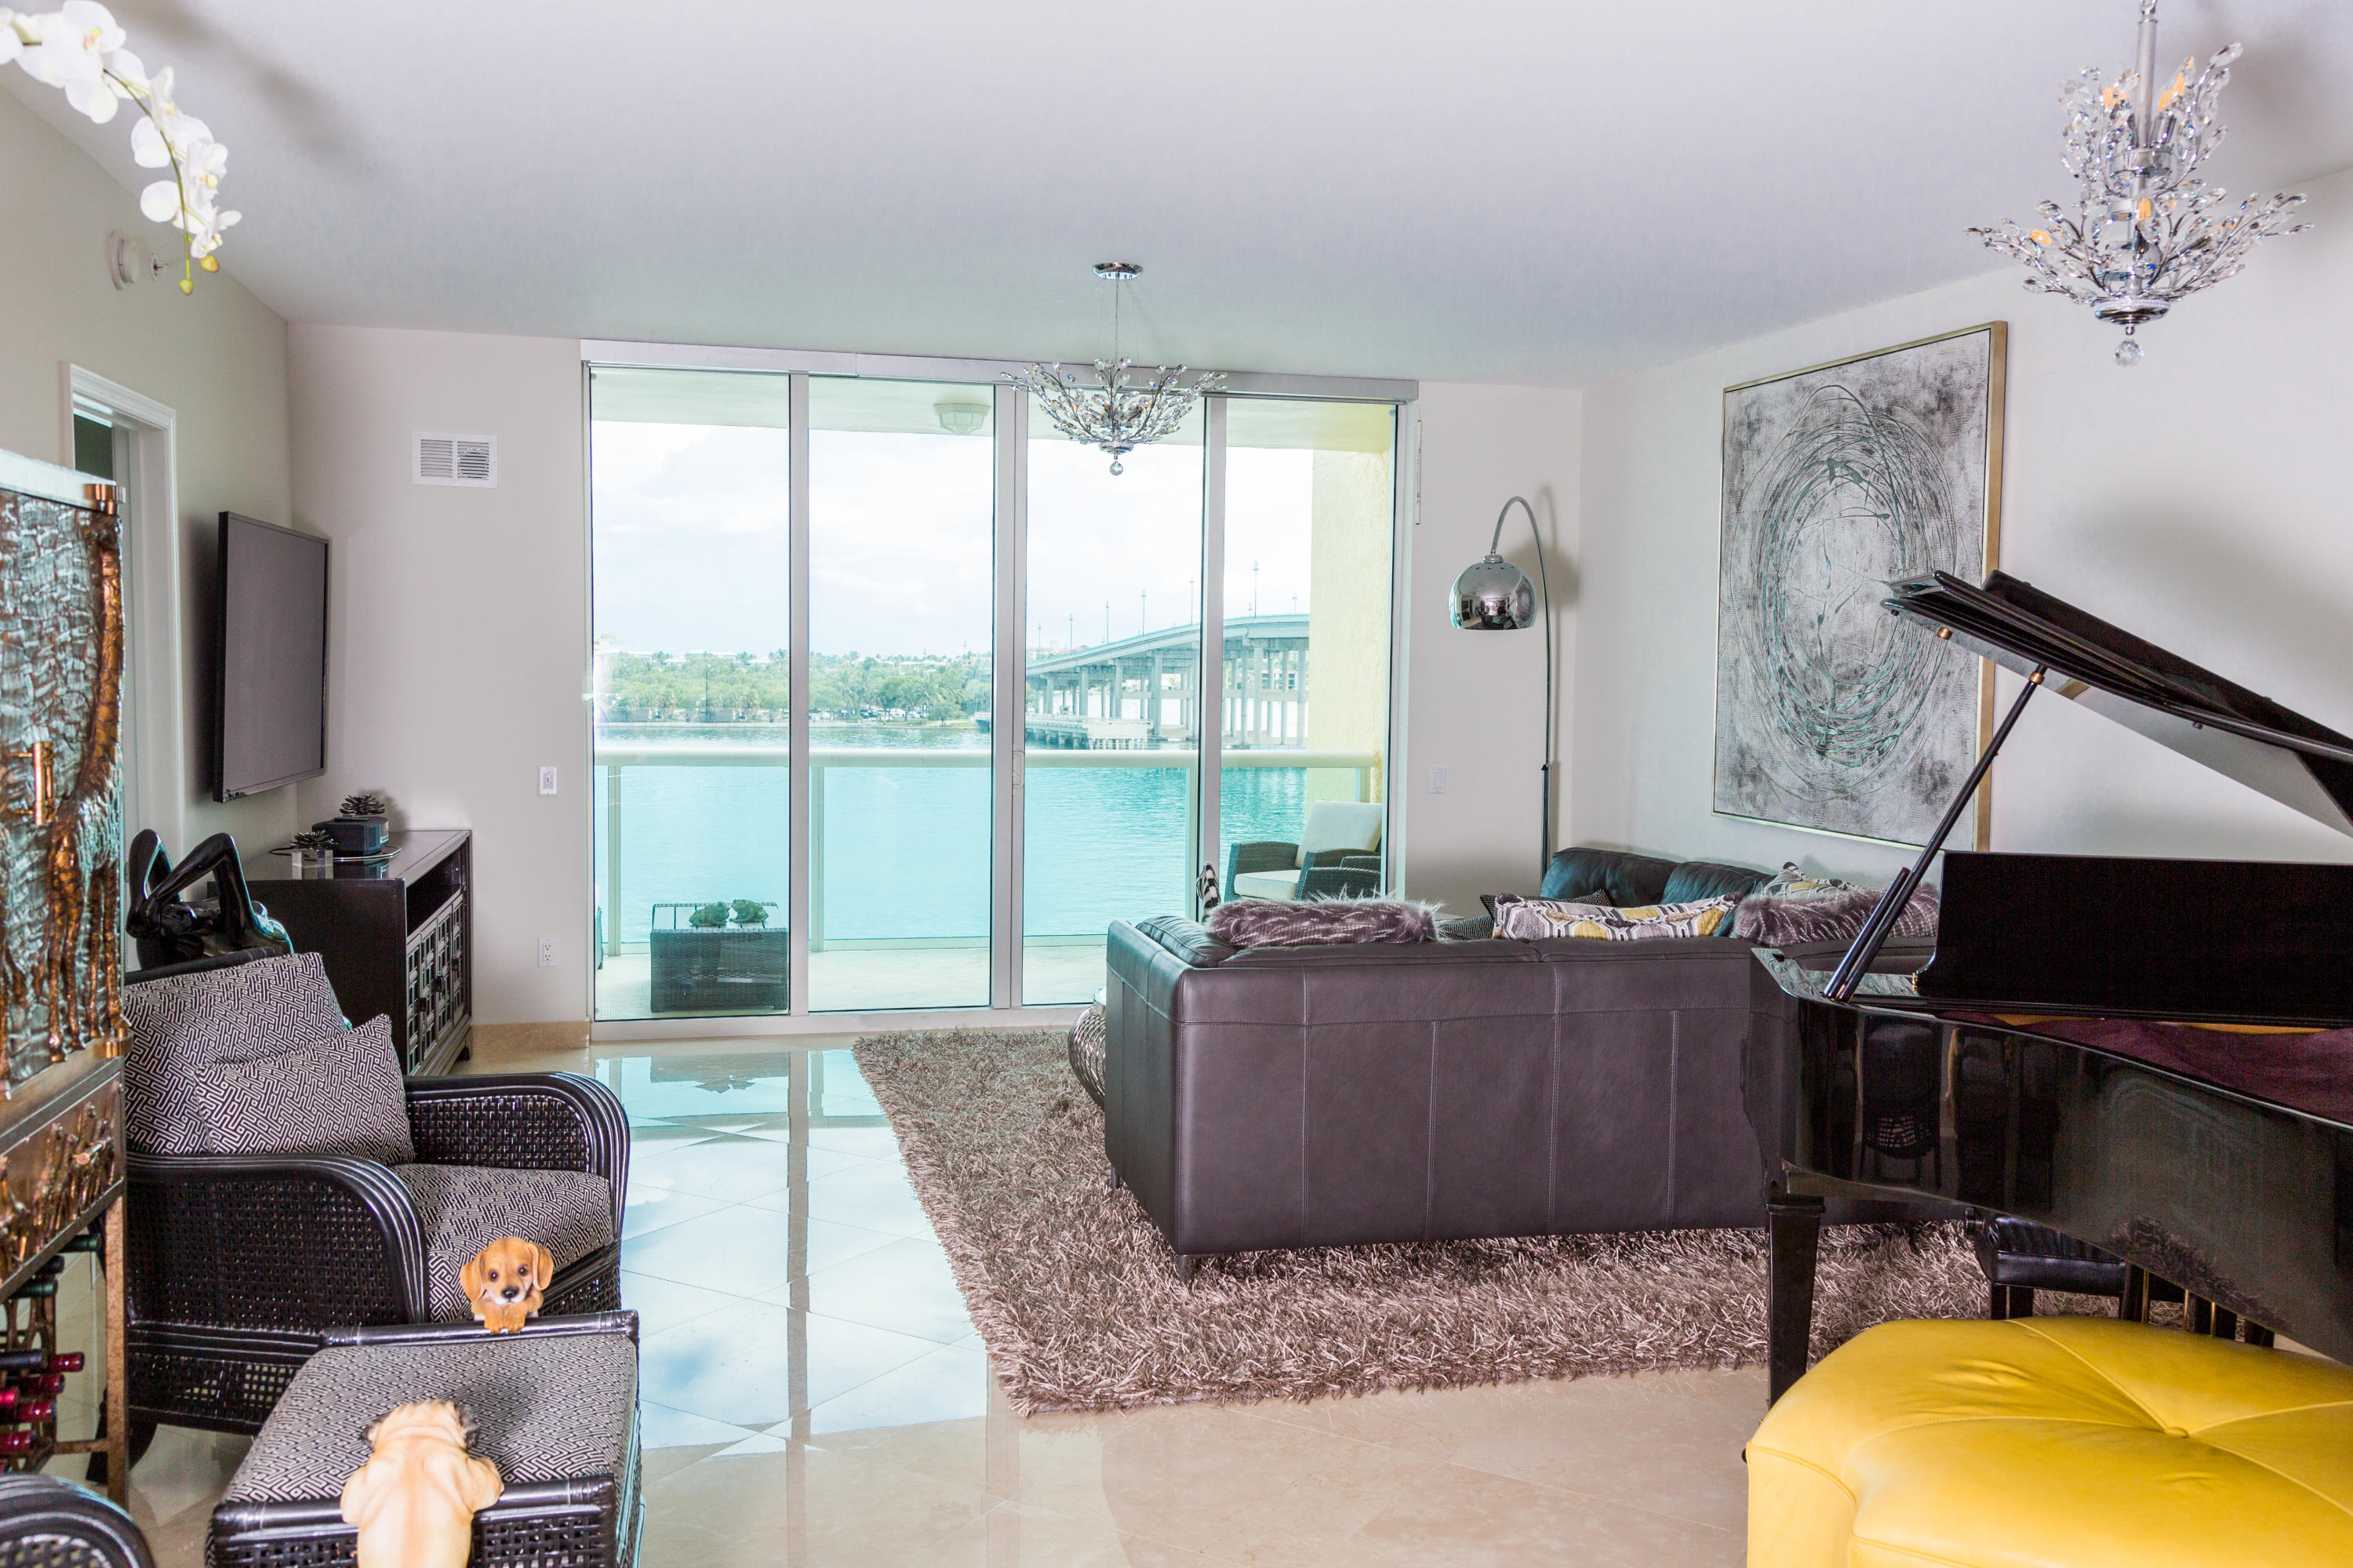 2640 Lake Shore Drive 512, Riviera Beach, Florida 33404, 2 Bedrooms Bedrooms, ,2 BathroomsBathrooms,A,Condominium,Lake Shore,RX-10465176